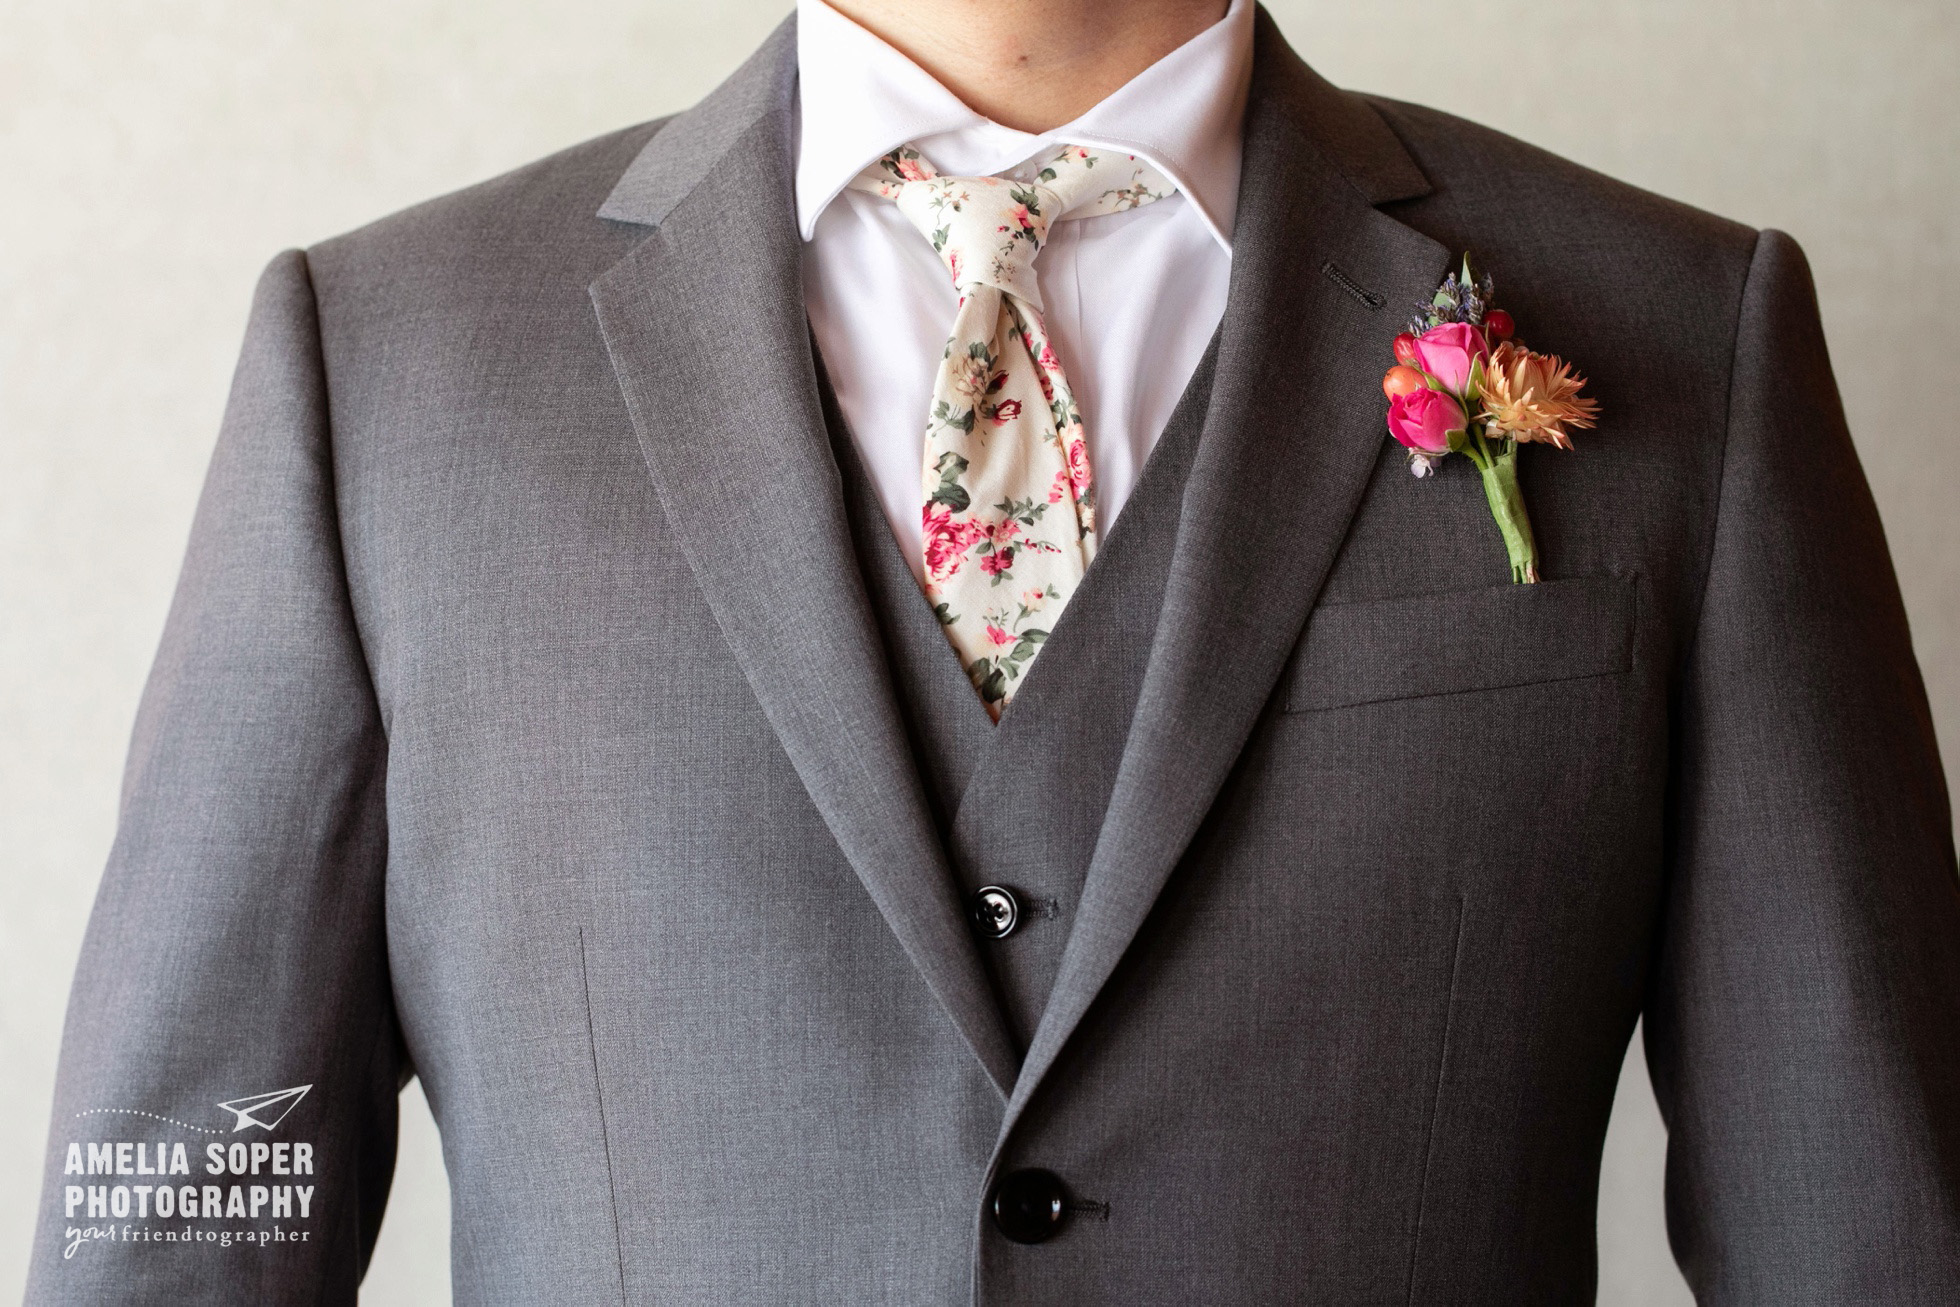 Floral tie, Destination wedding at Semiahmoo resort in Blaine, Washington PNW